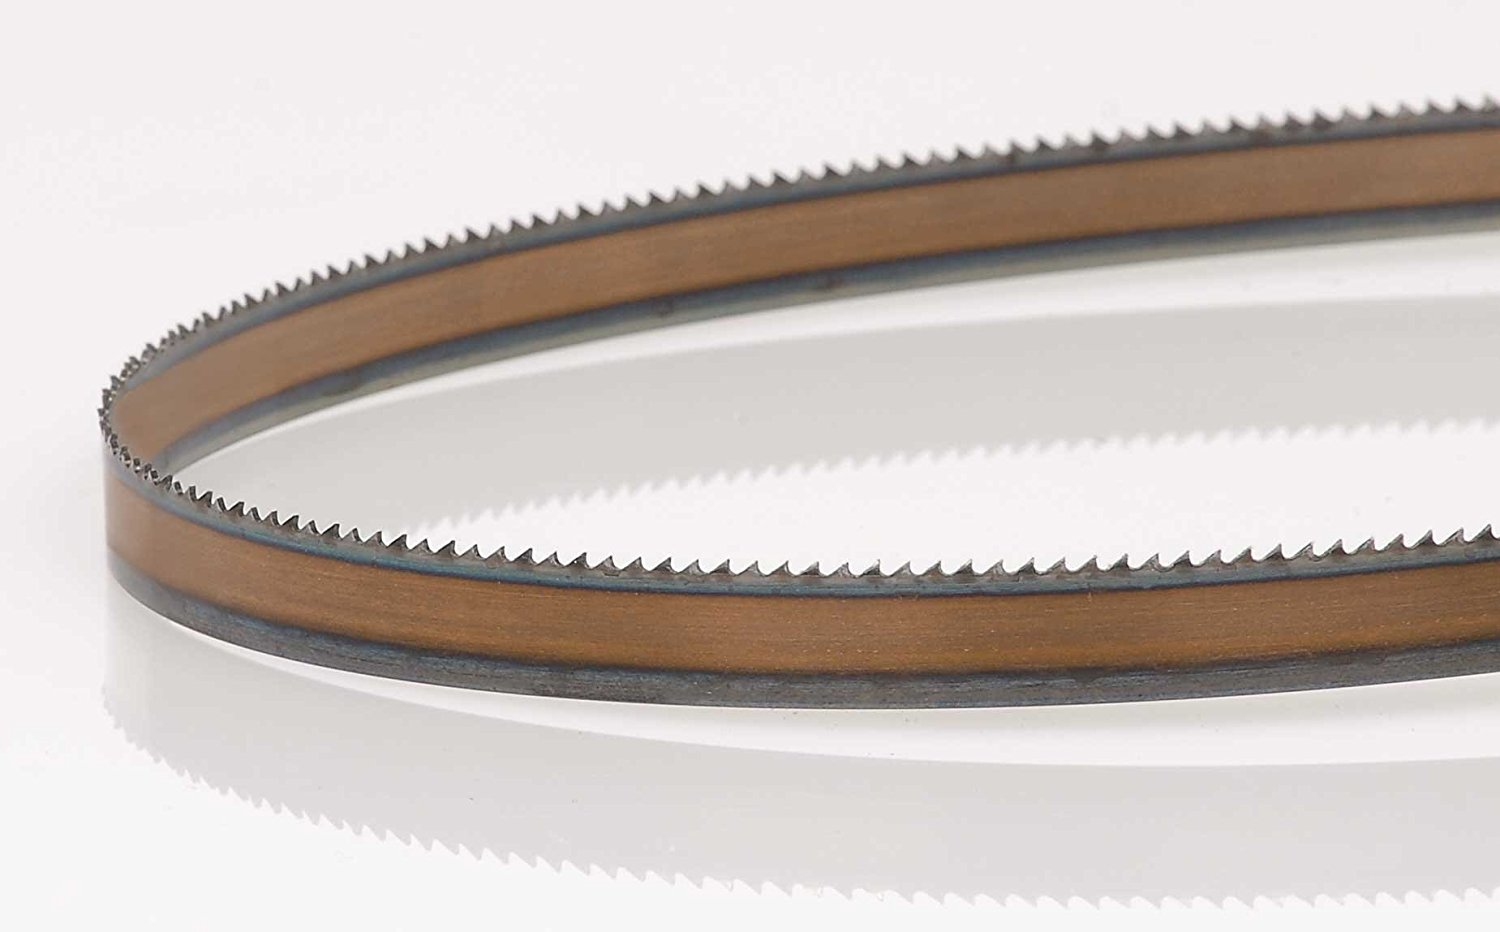 Timber Wolf Bandsaw Blade 1/2' x 93-1/2', 10 TPI